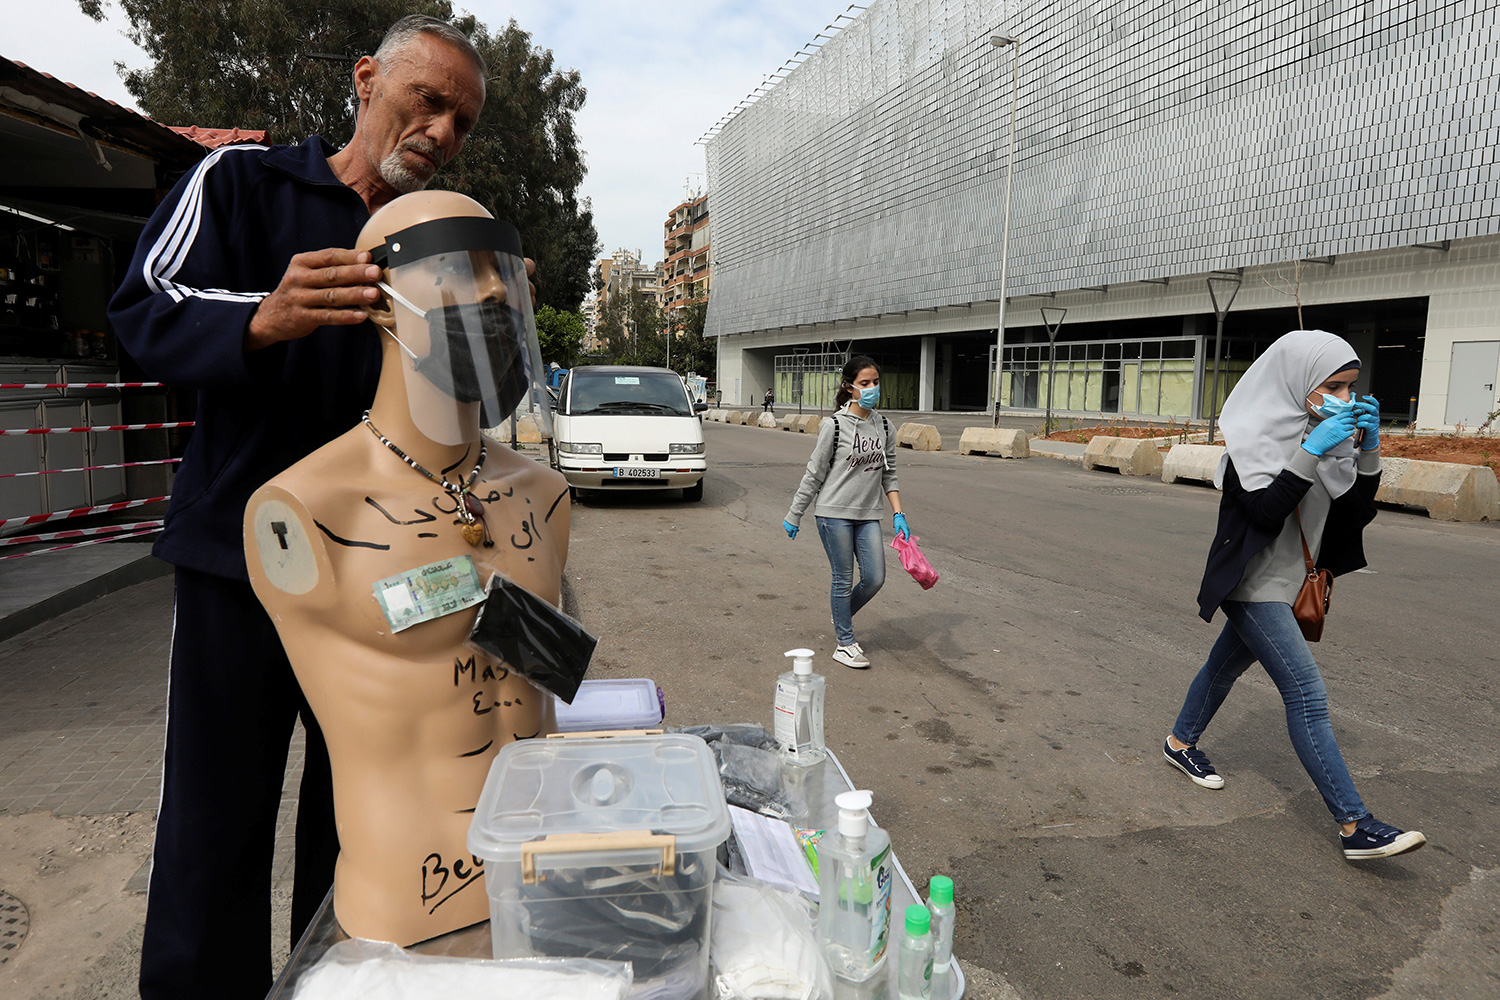 The photo shows the man fitting a clear plastic mask on a manikin next to a makeshift huckster table on a busy street with people walking by.